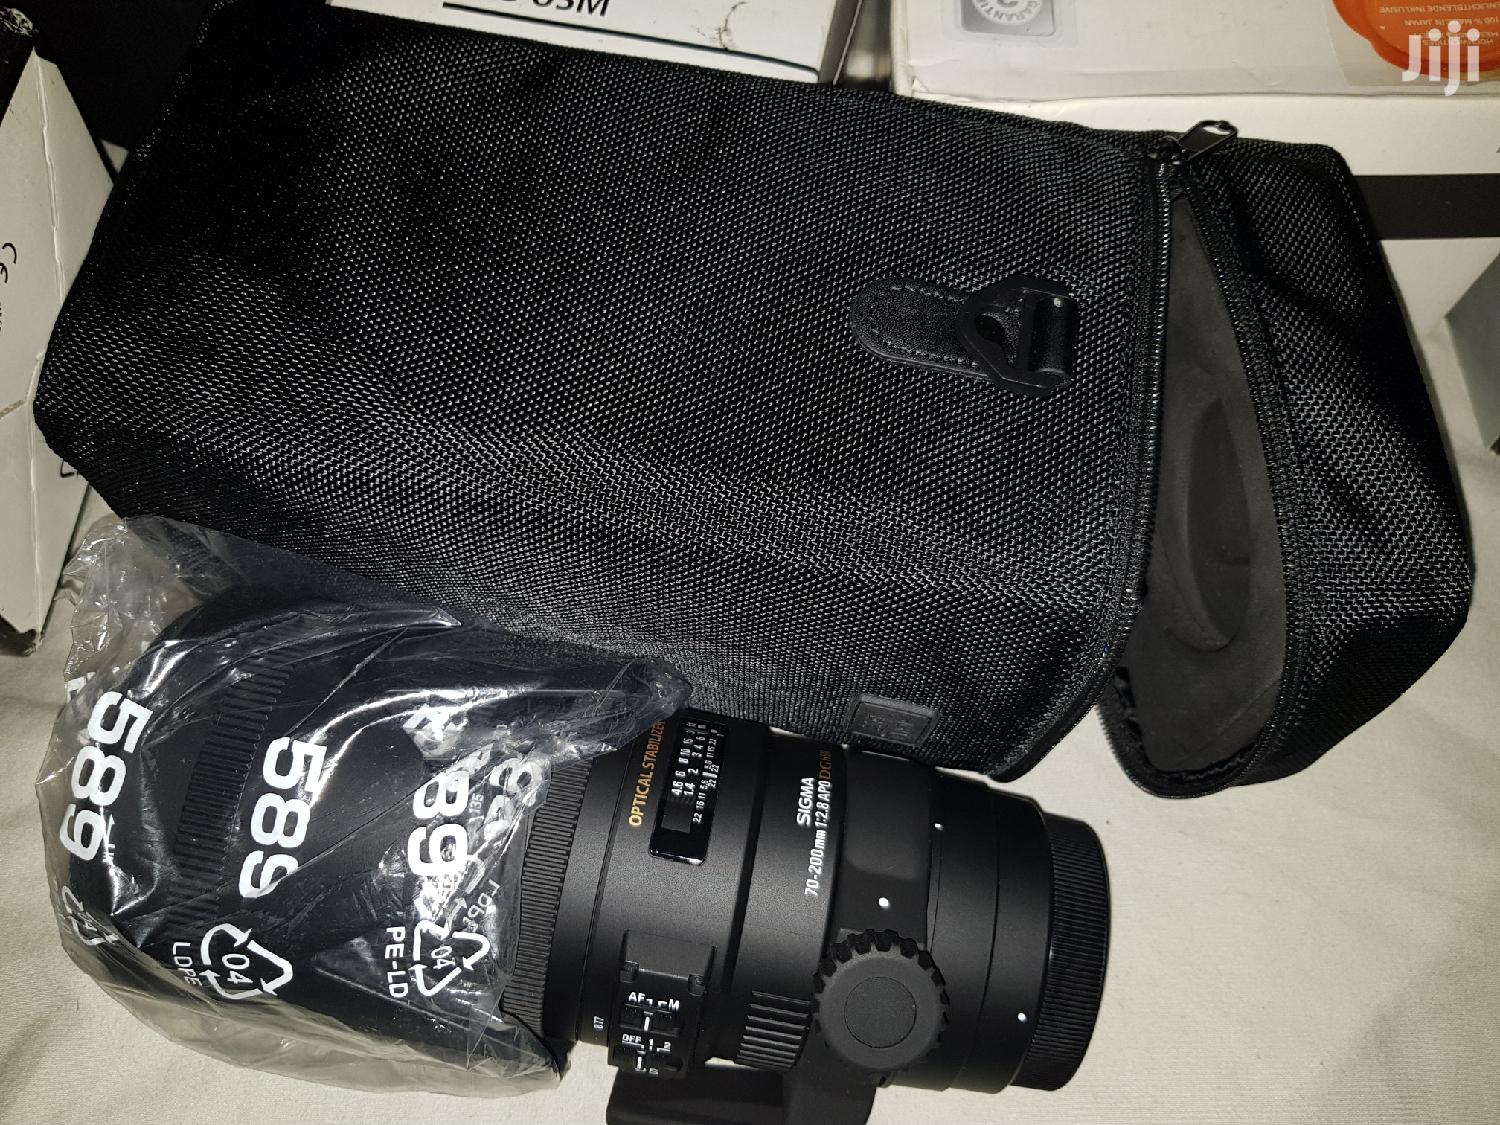 Nikon Fit Sigma 70-200mm F2.8 Apo Dg Hsm OS Telephoto Lens | Accessories & Supplies for Electronics for sale in Kokomlemle, Greater Accra, Ghana